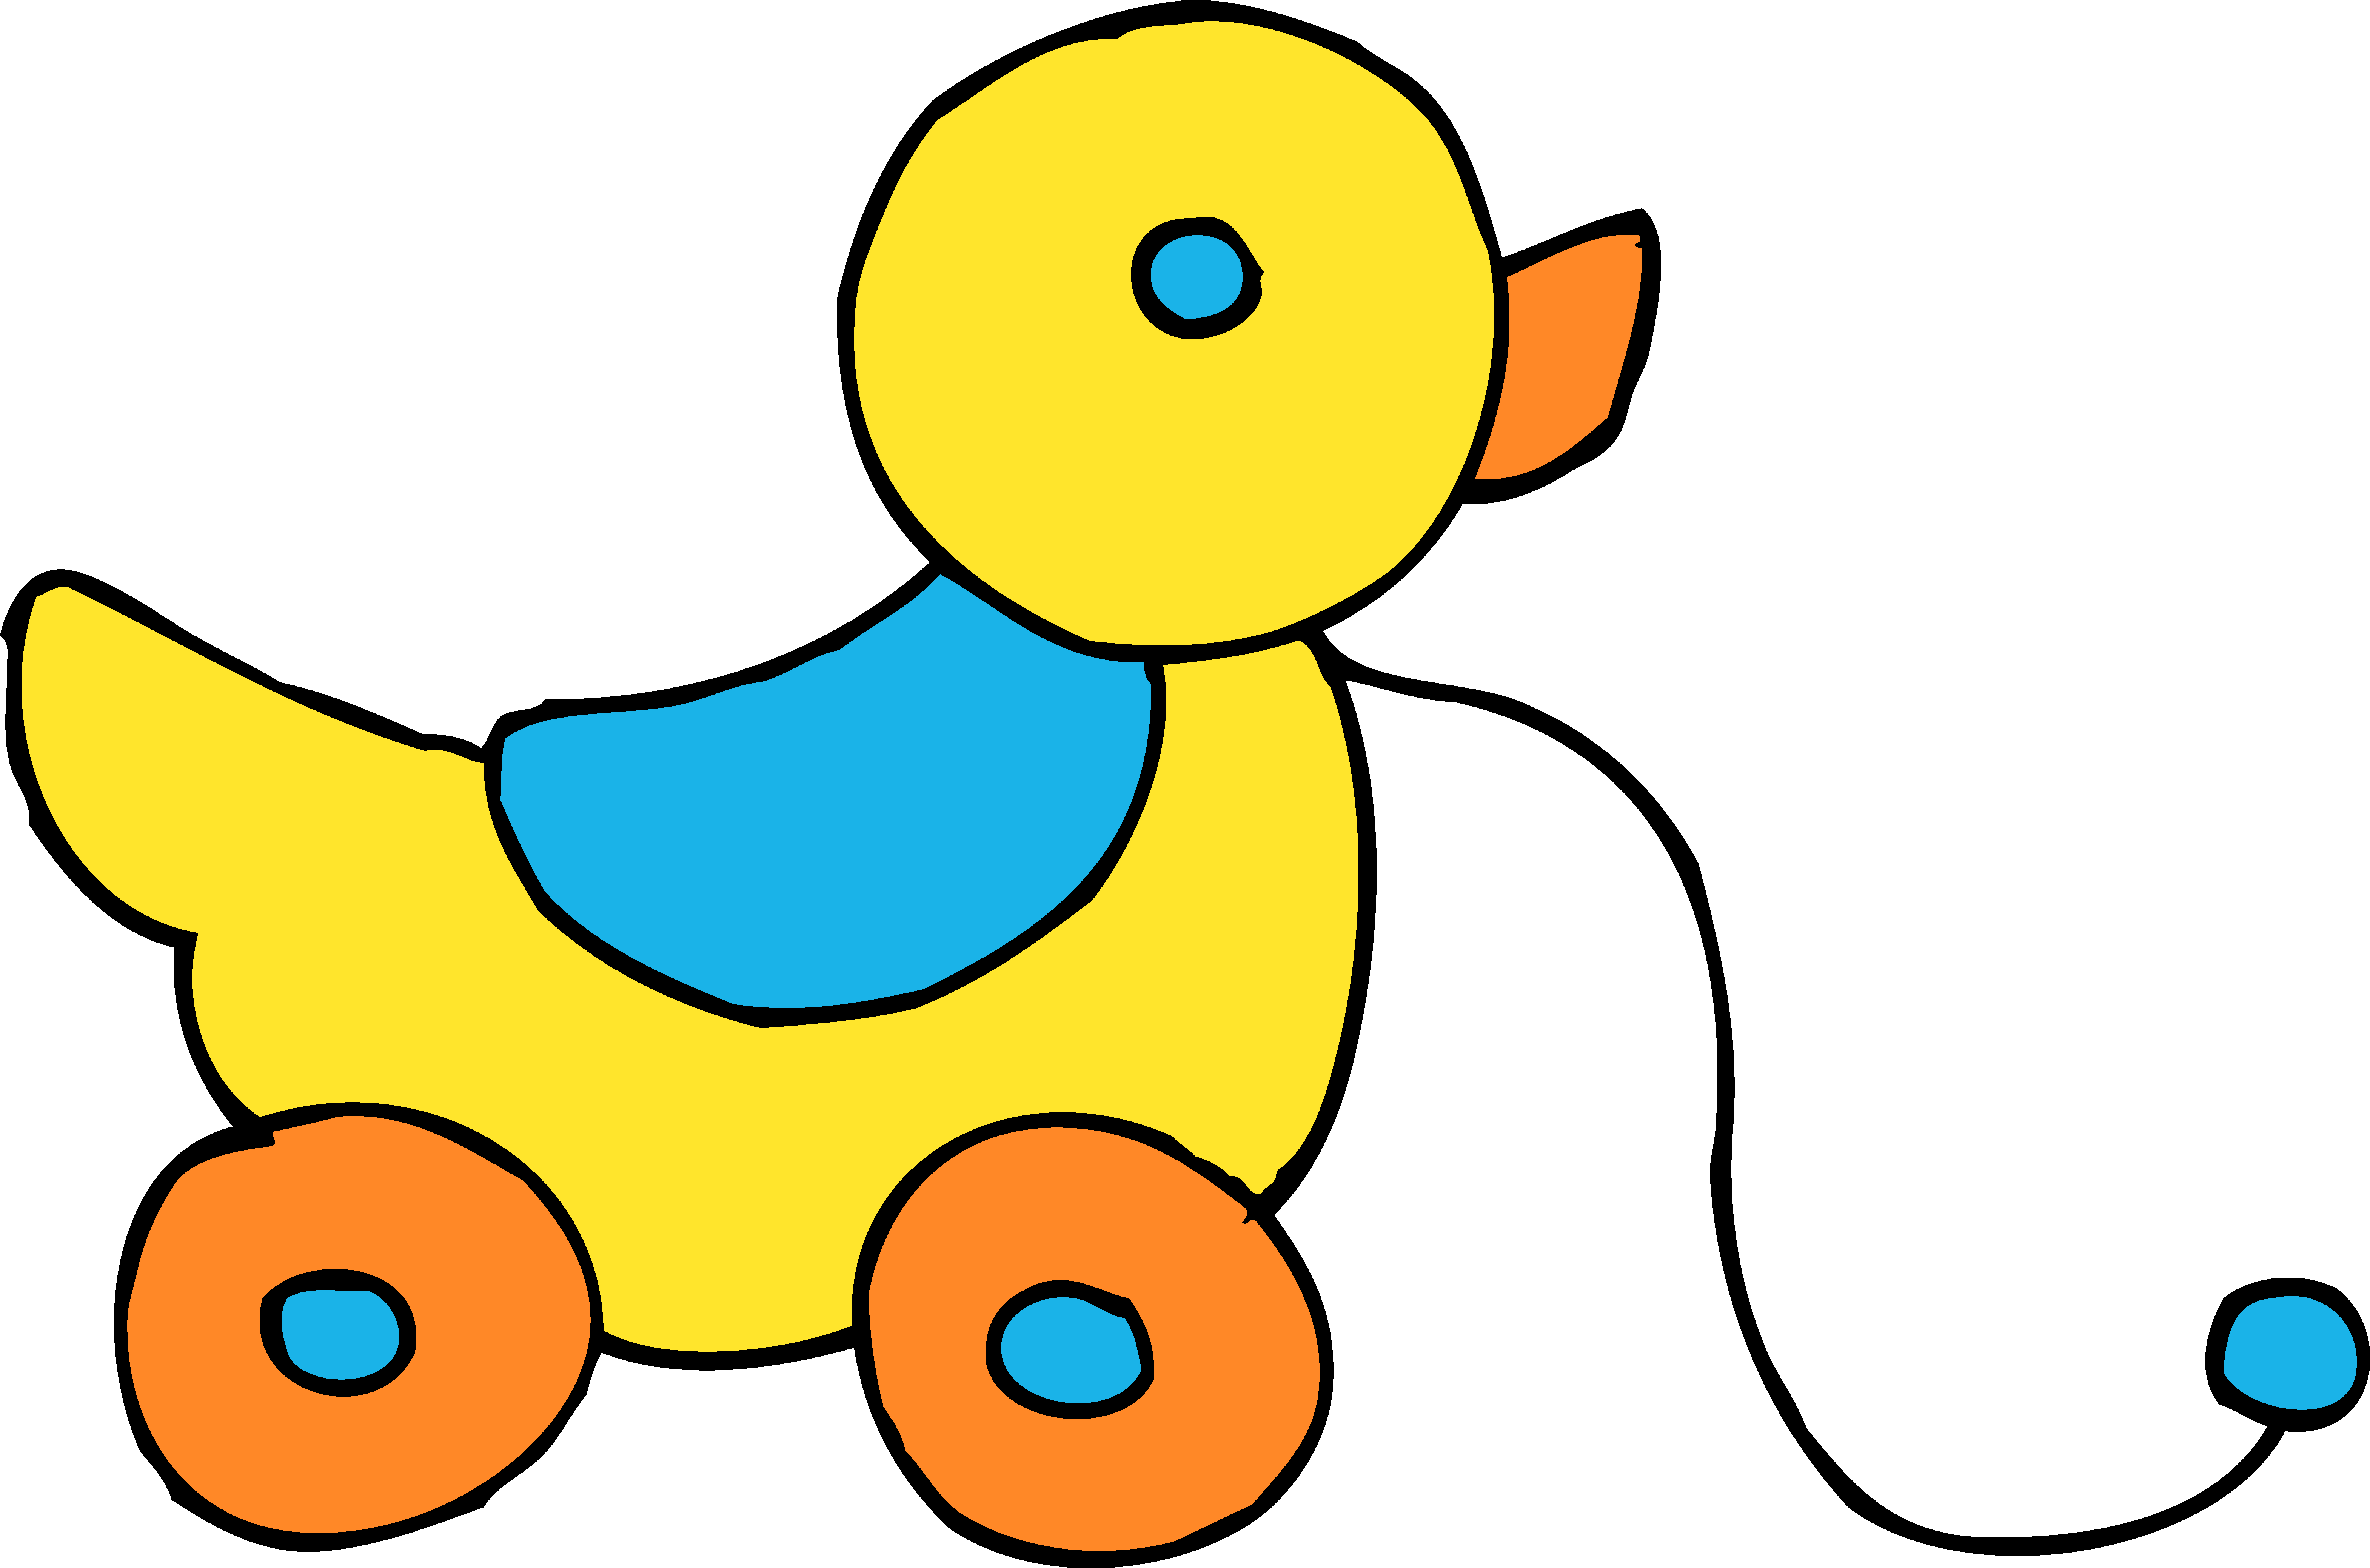 Rolling clipart. Yellow ducky toy free